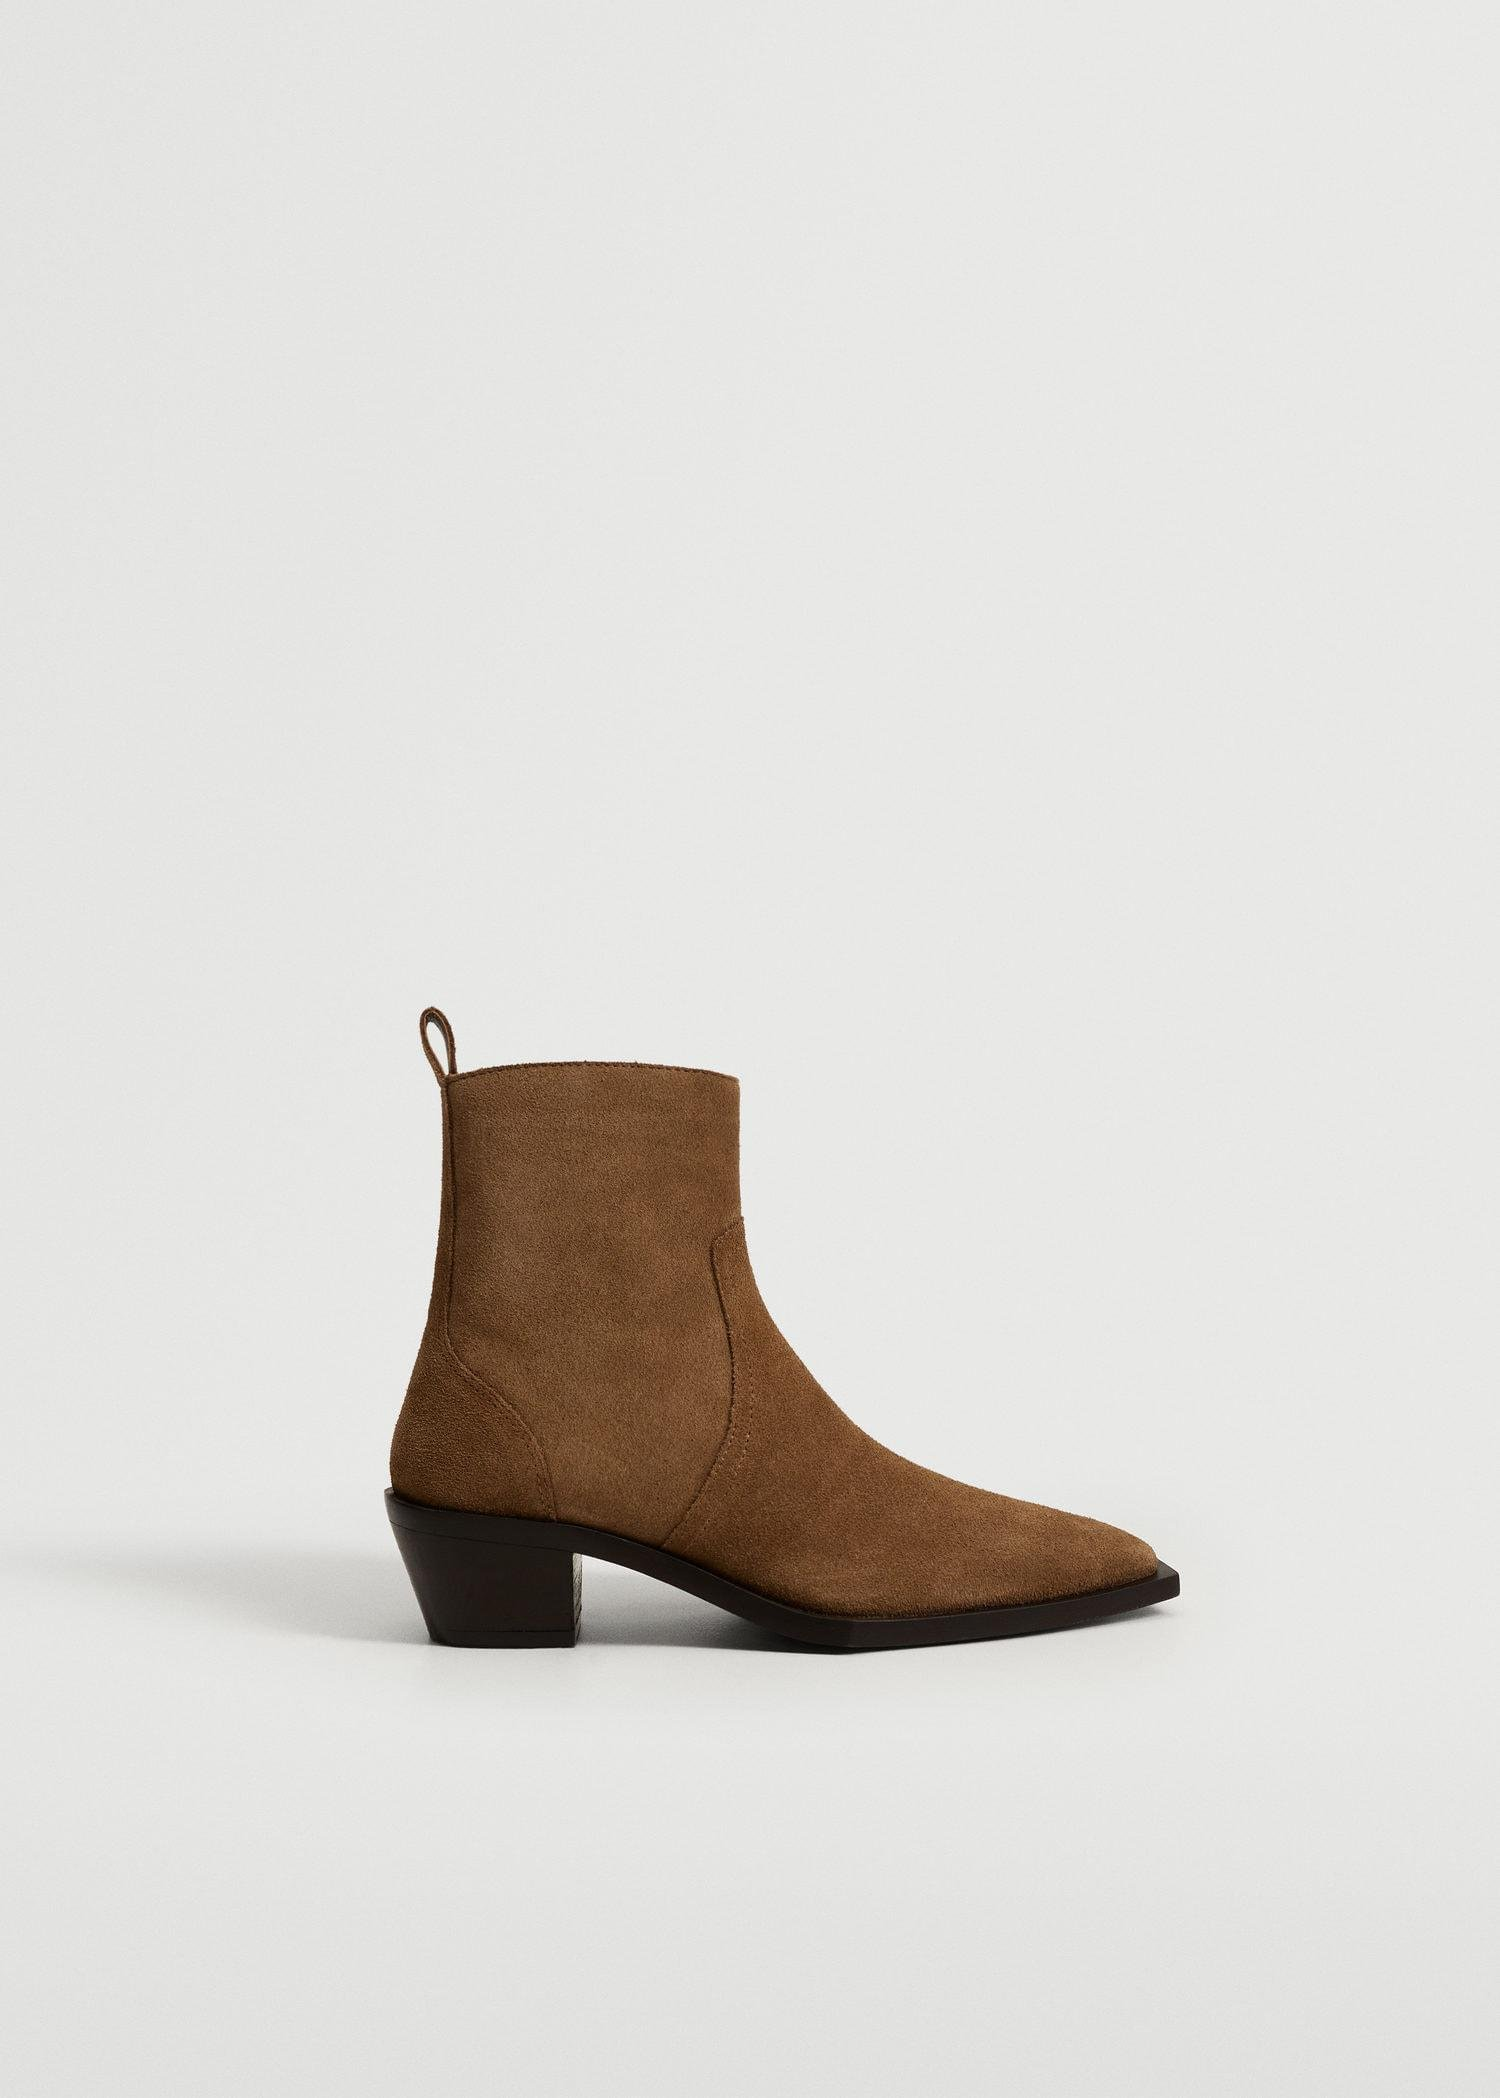 Squared toe leather ankle boots